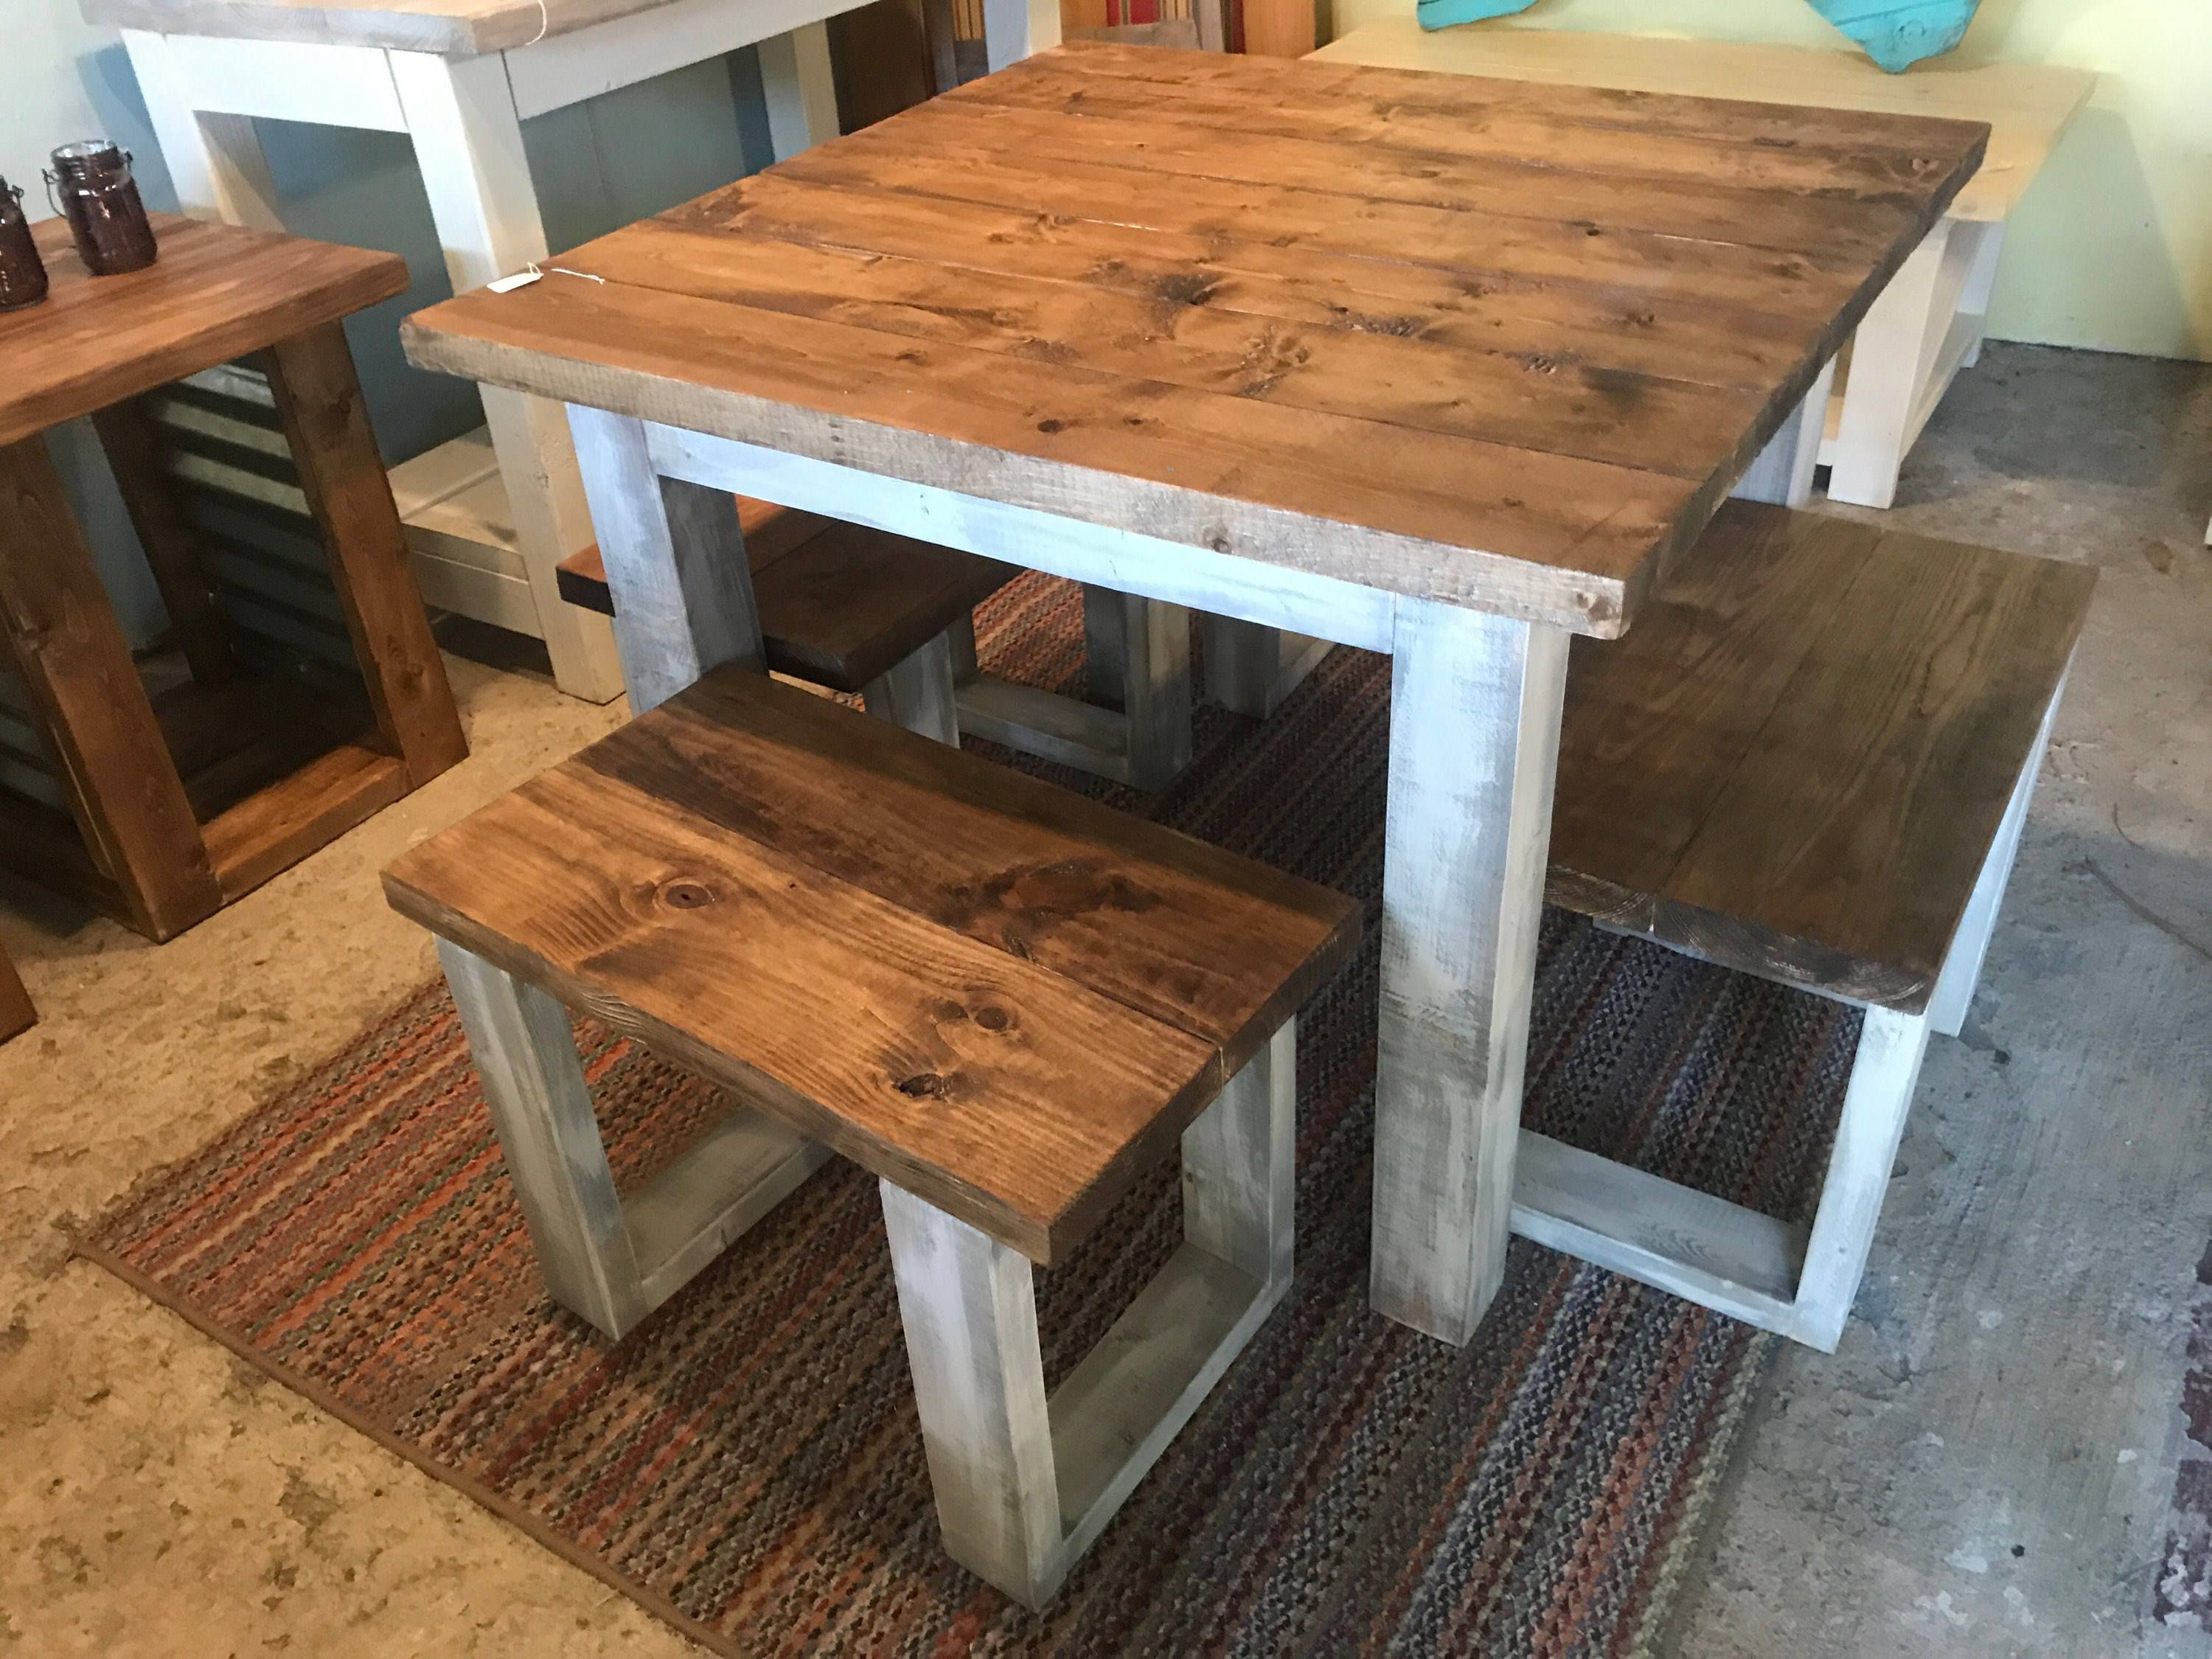 Square Farmhouse Table Rustic Farmhouse Table Dining Set With Stools Table With Short Benches Provincial Brown Top Gray White Wash Base Square Farmhouse Table Square Wood Dining Tables Dining Table Small